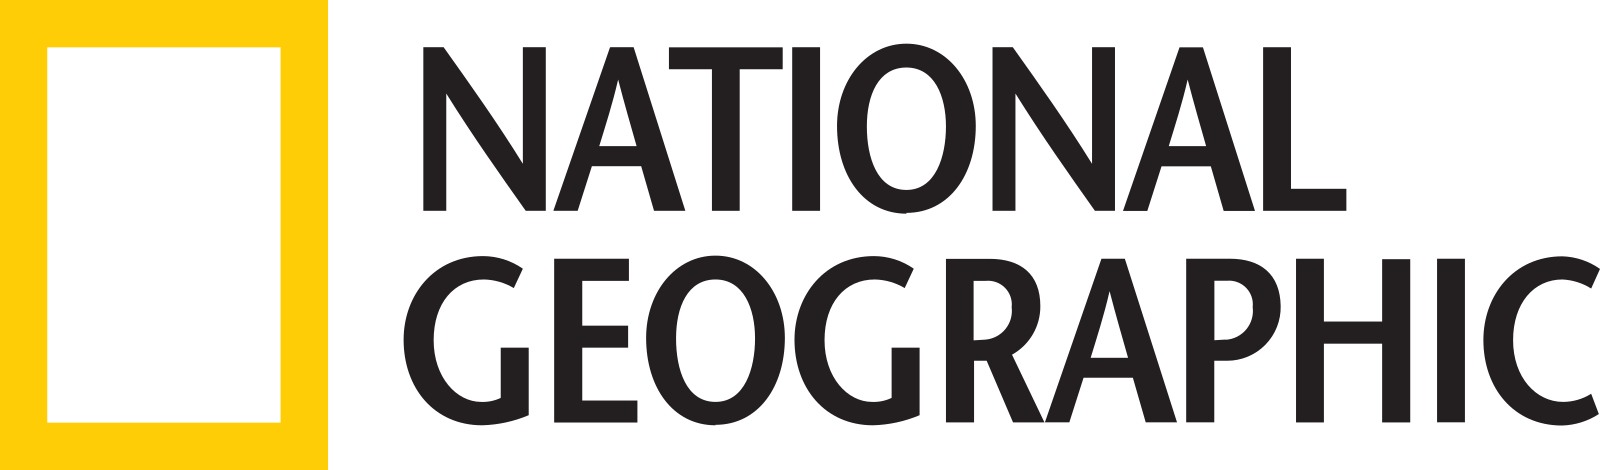 national geographic logo 2 - National Geographic Logo